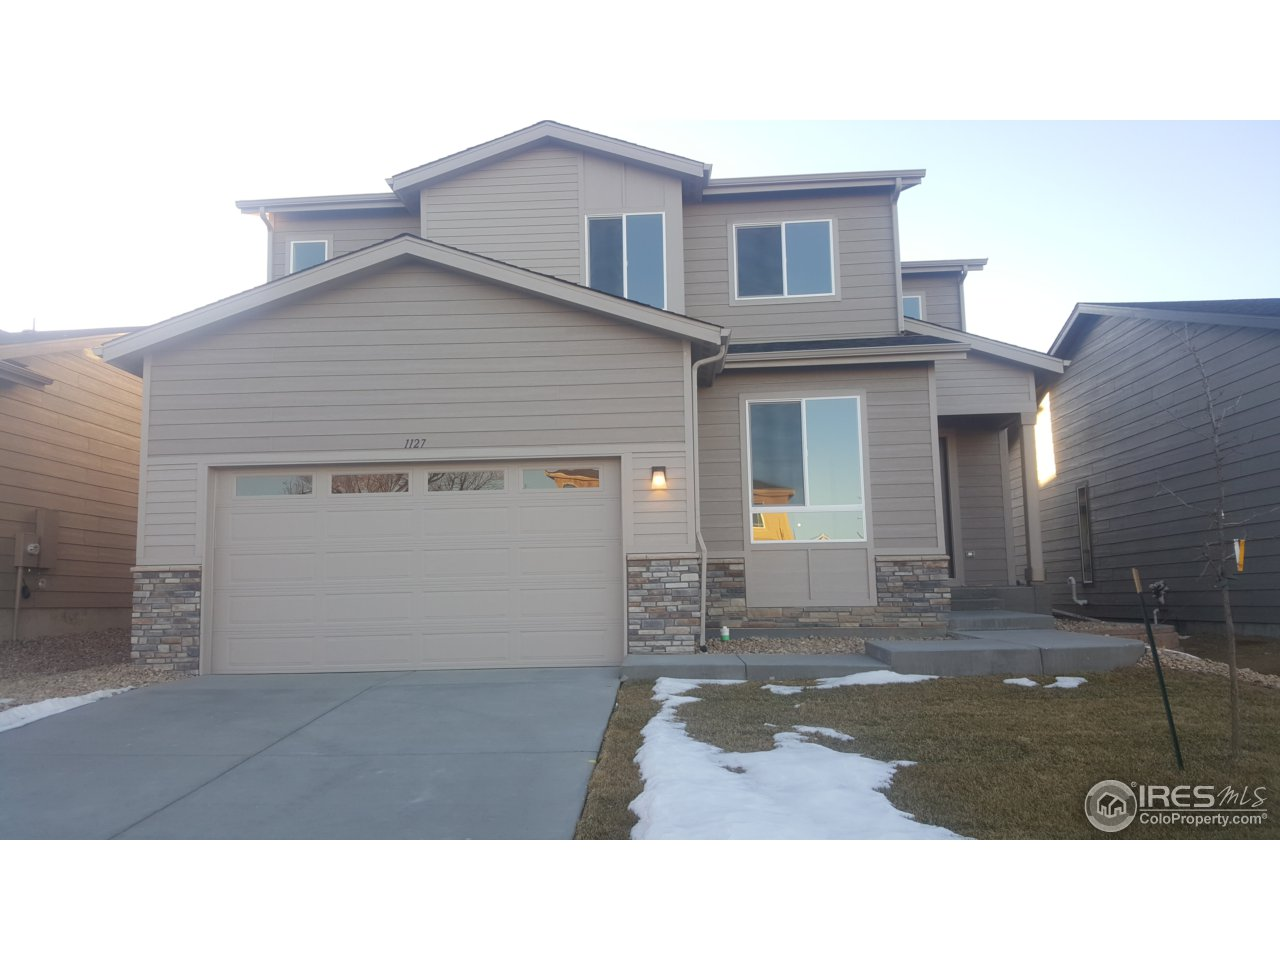 1127 102nd Ave, Greeley, CO 80634